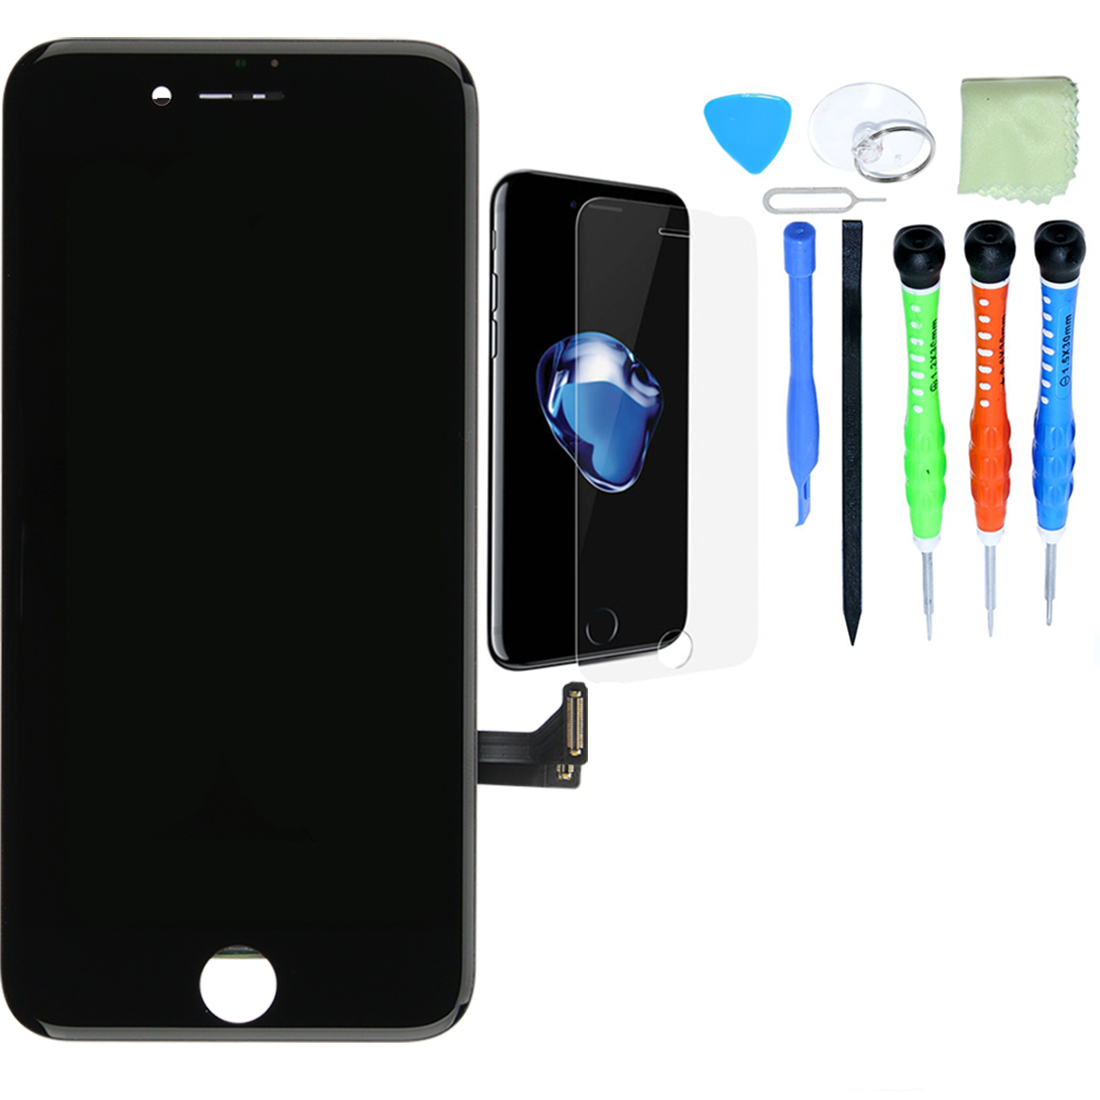 iPhone LCD Screen and Digitizer Repair Kits - iPhone 5S - Black